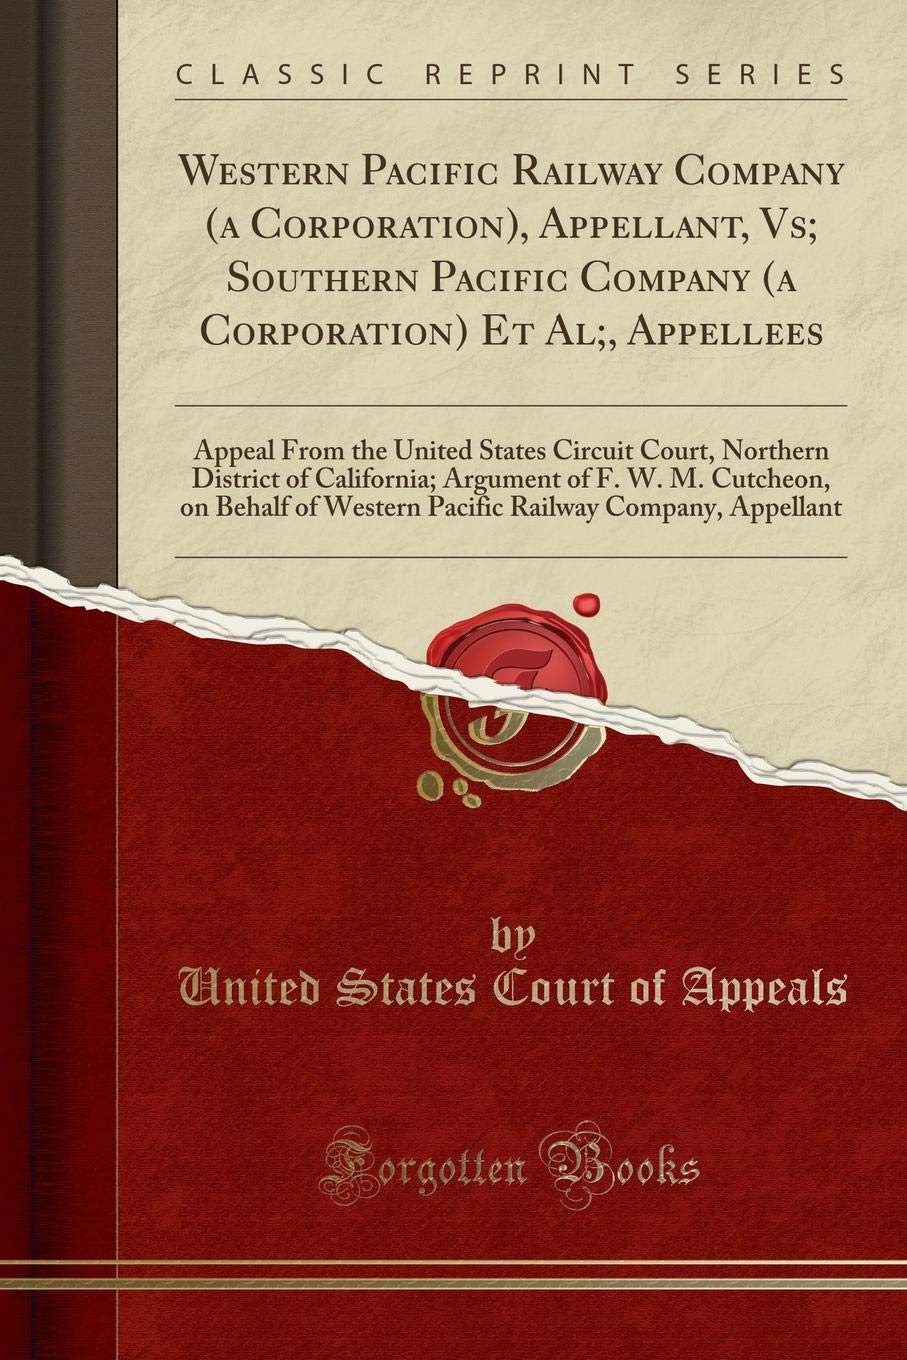 Download Western Pacific Railway Company (a Corporation), Appellant, Vs; Southern Pacific Company (a Corporation) Et Al;, Appellees: Appeal From the United ... of F. W. M. Cutcheon, on Behalf of Western P pdf